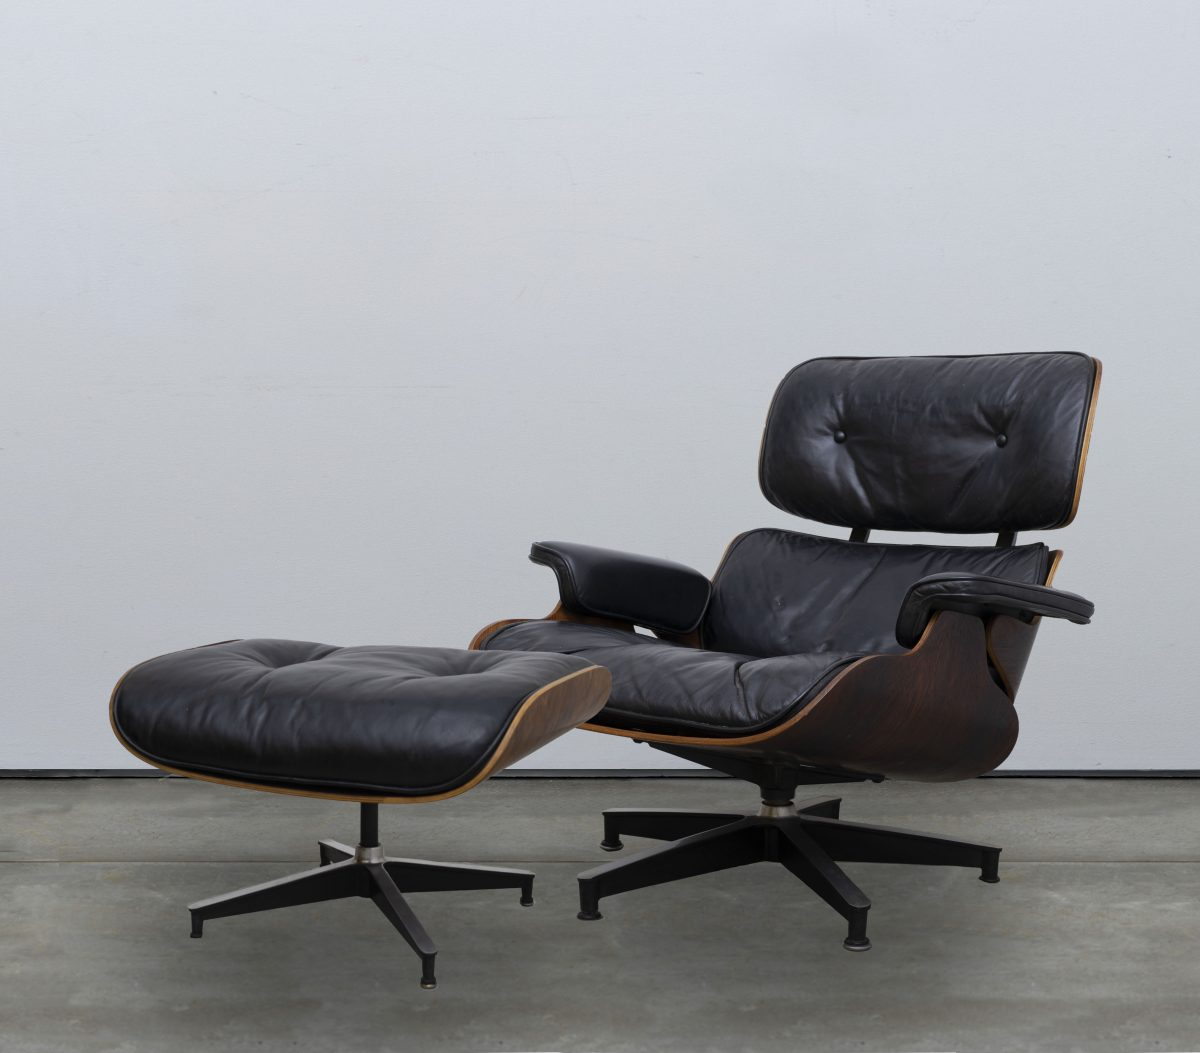 Awe Inspiring Charles And Ray Eames For Herman Miller Eames Lounge Chair Machost Co Dining Chair Design Ideas Machostcouk